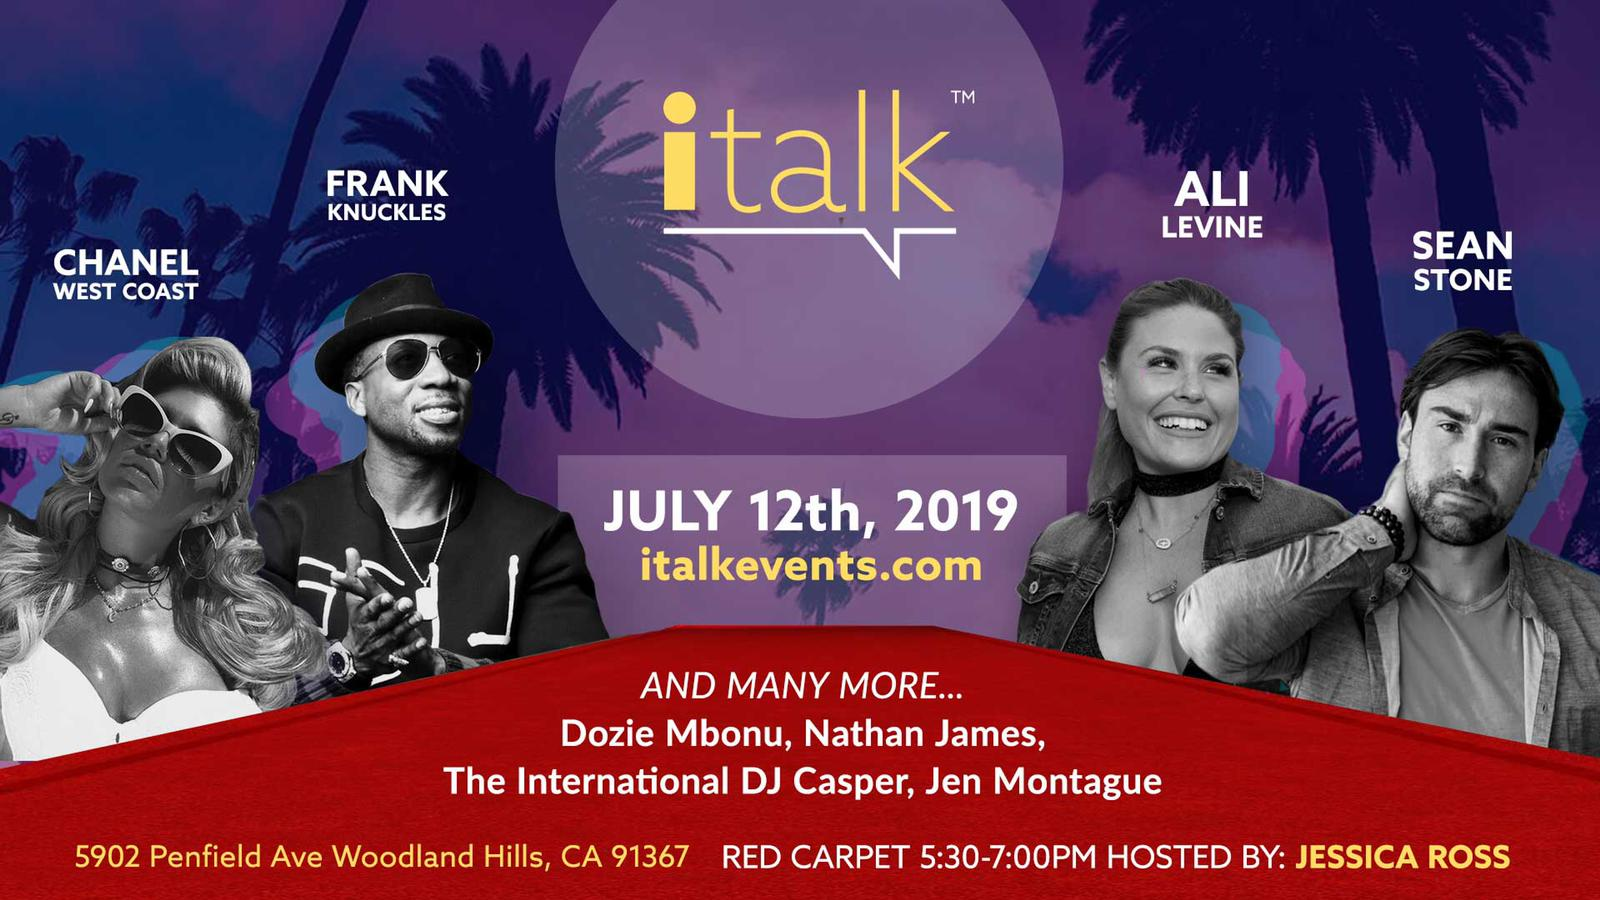 Italk LA will feature the likes of Sean Stone Ali Levine and Chanel West Coast